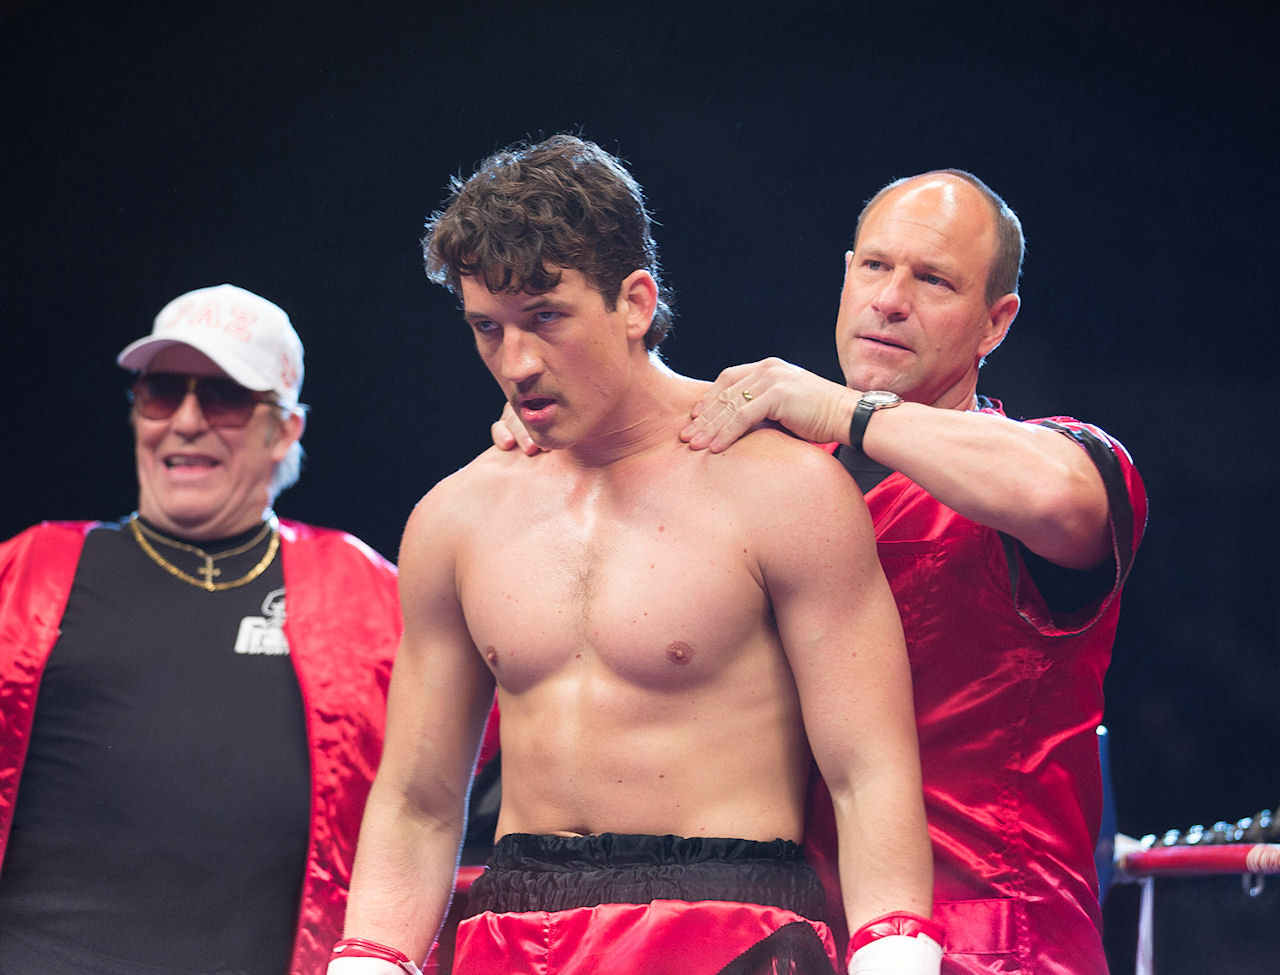 Miles Teller (center) stars as Vinny Pazienza and Aaron Eckhart (right) stars as Kevin Rooney in BLEED FOR THIS. (Photo by Seacia Pavao / Open Road Films).